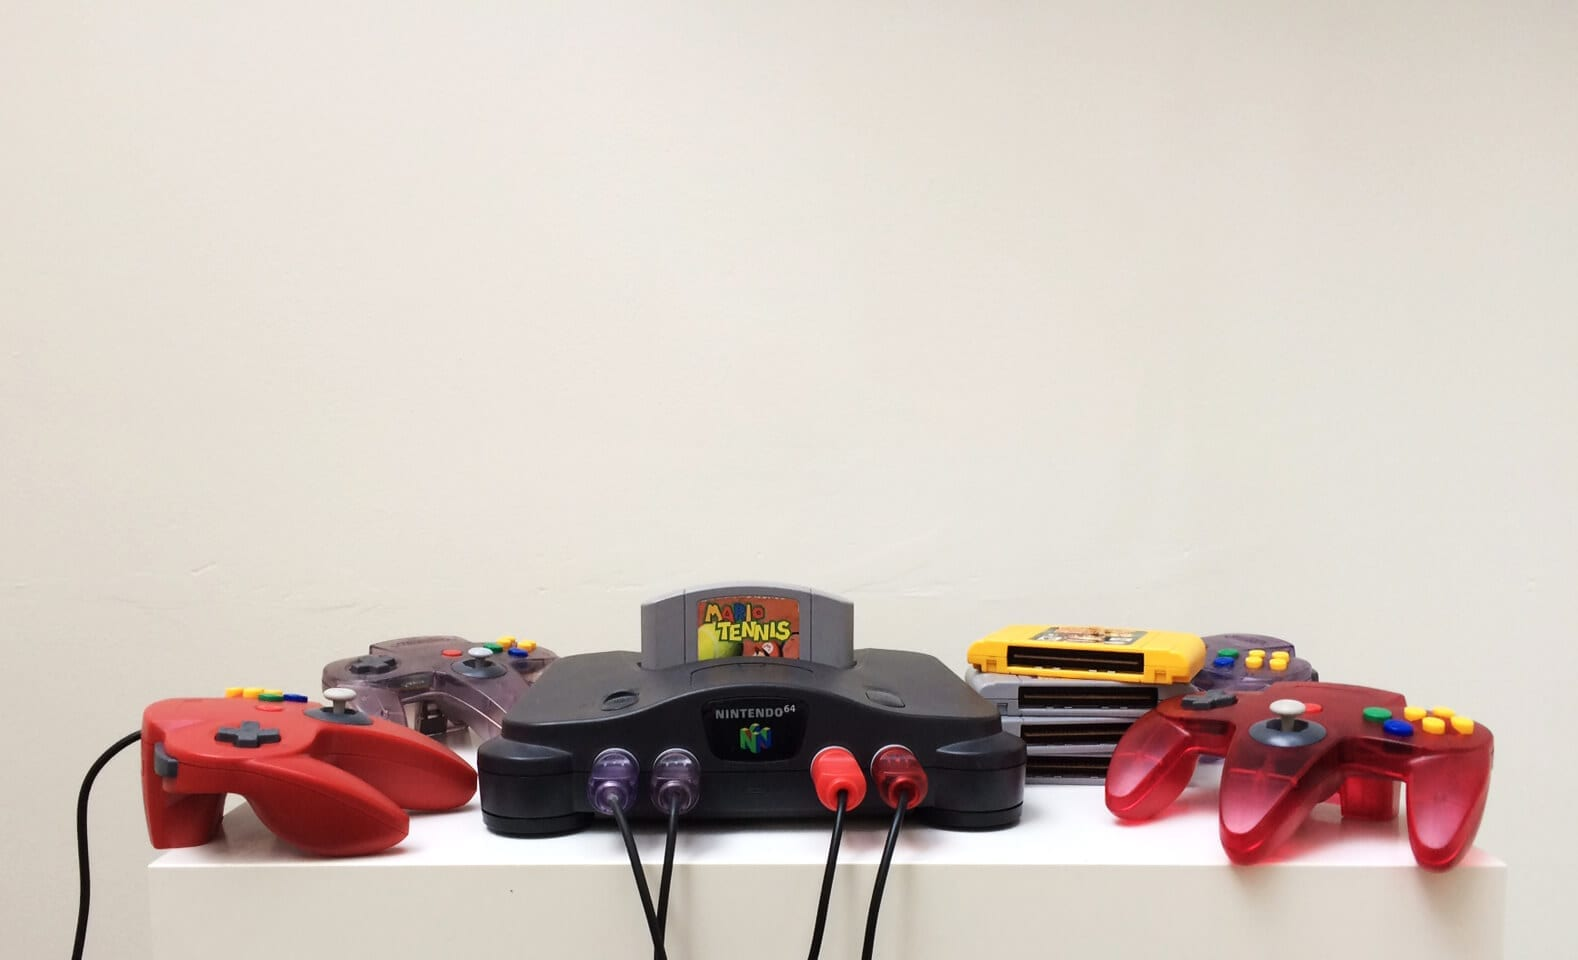 office fun ideas. office n64 fun ideas